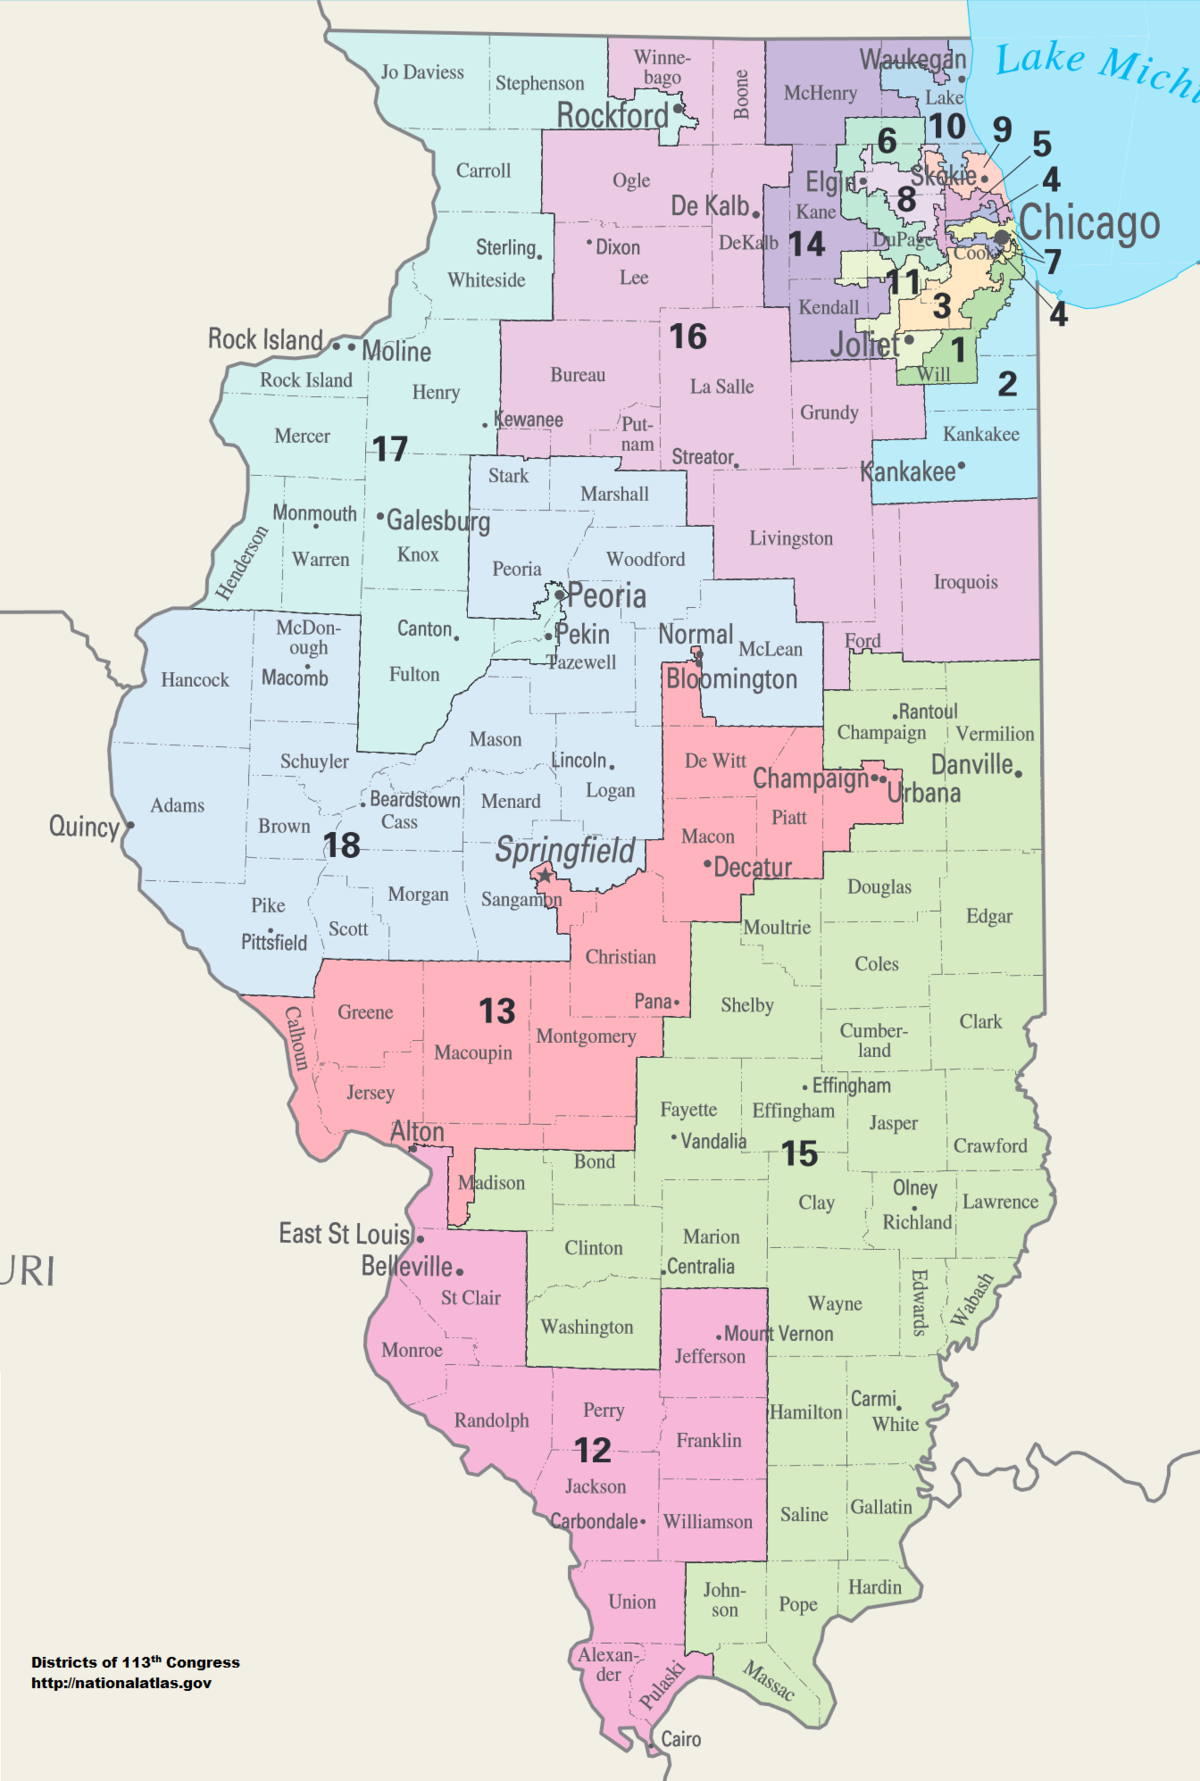 Illinois39 Congressional Districts  Wikipedia